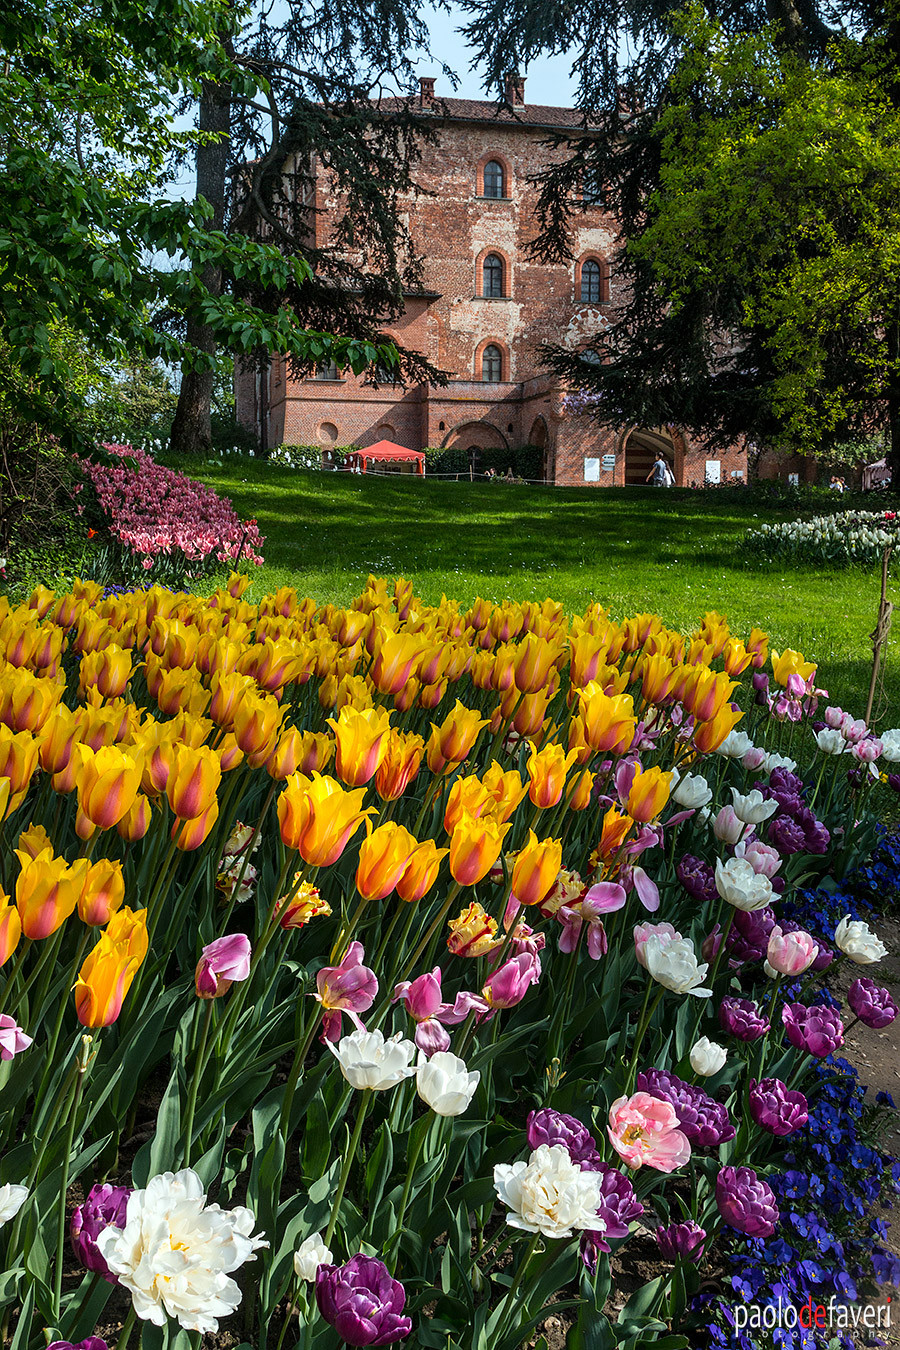 Pralormo Castle Turin Italy Messer Tulipano Tulip Flowers Exhibition spring 2019